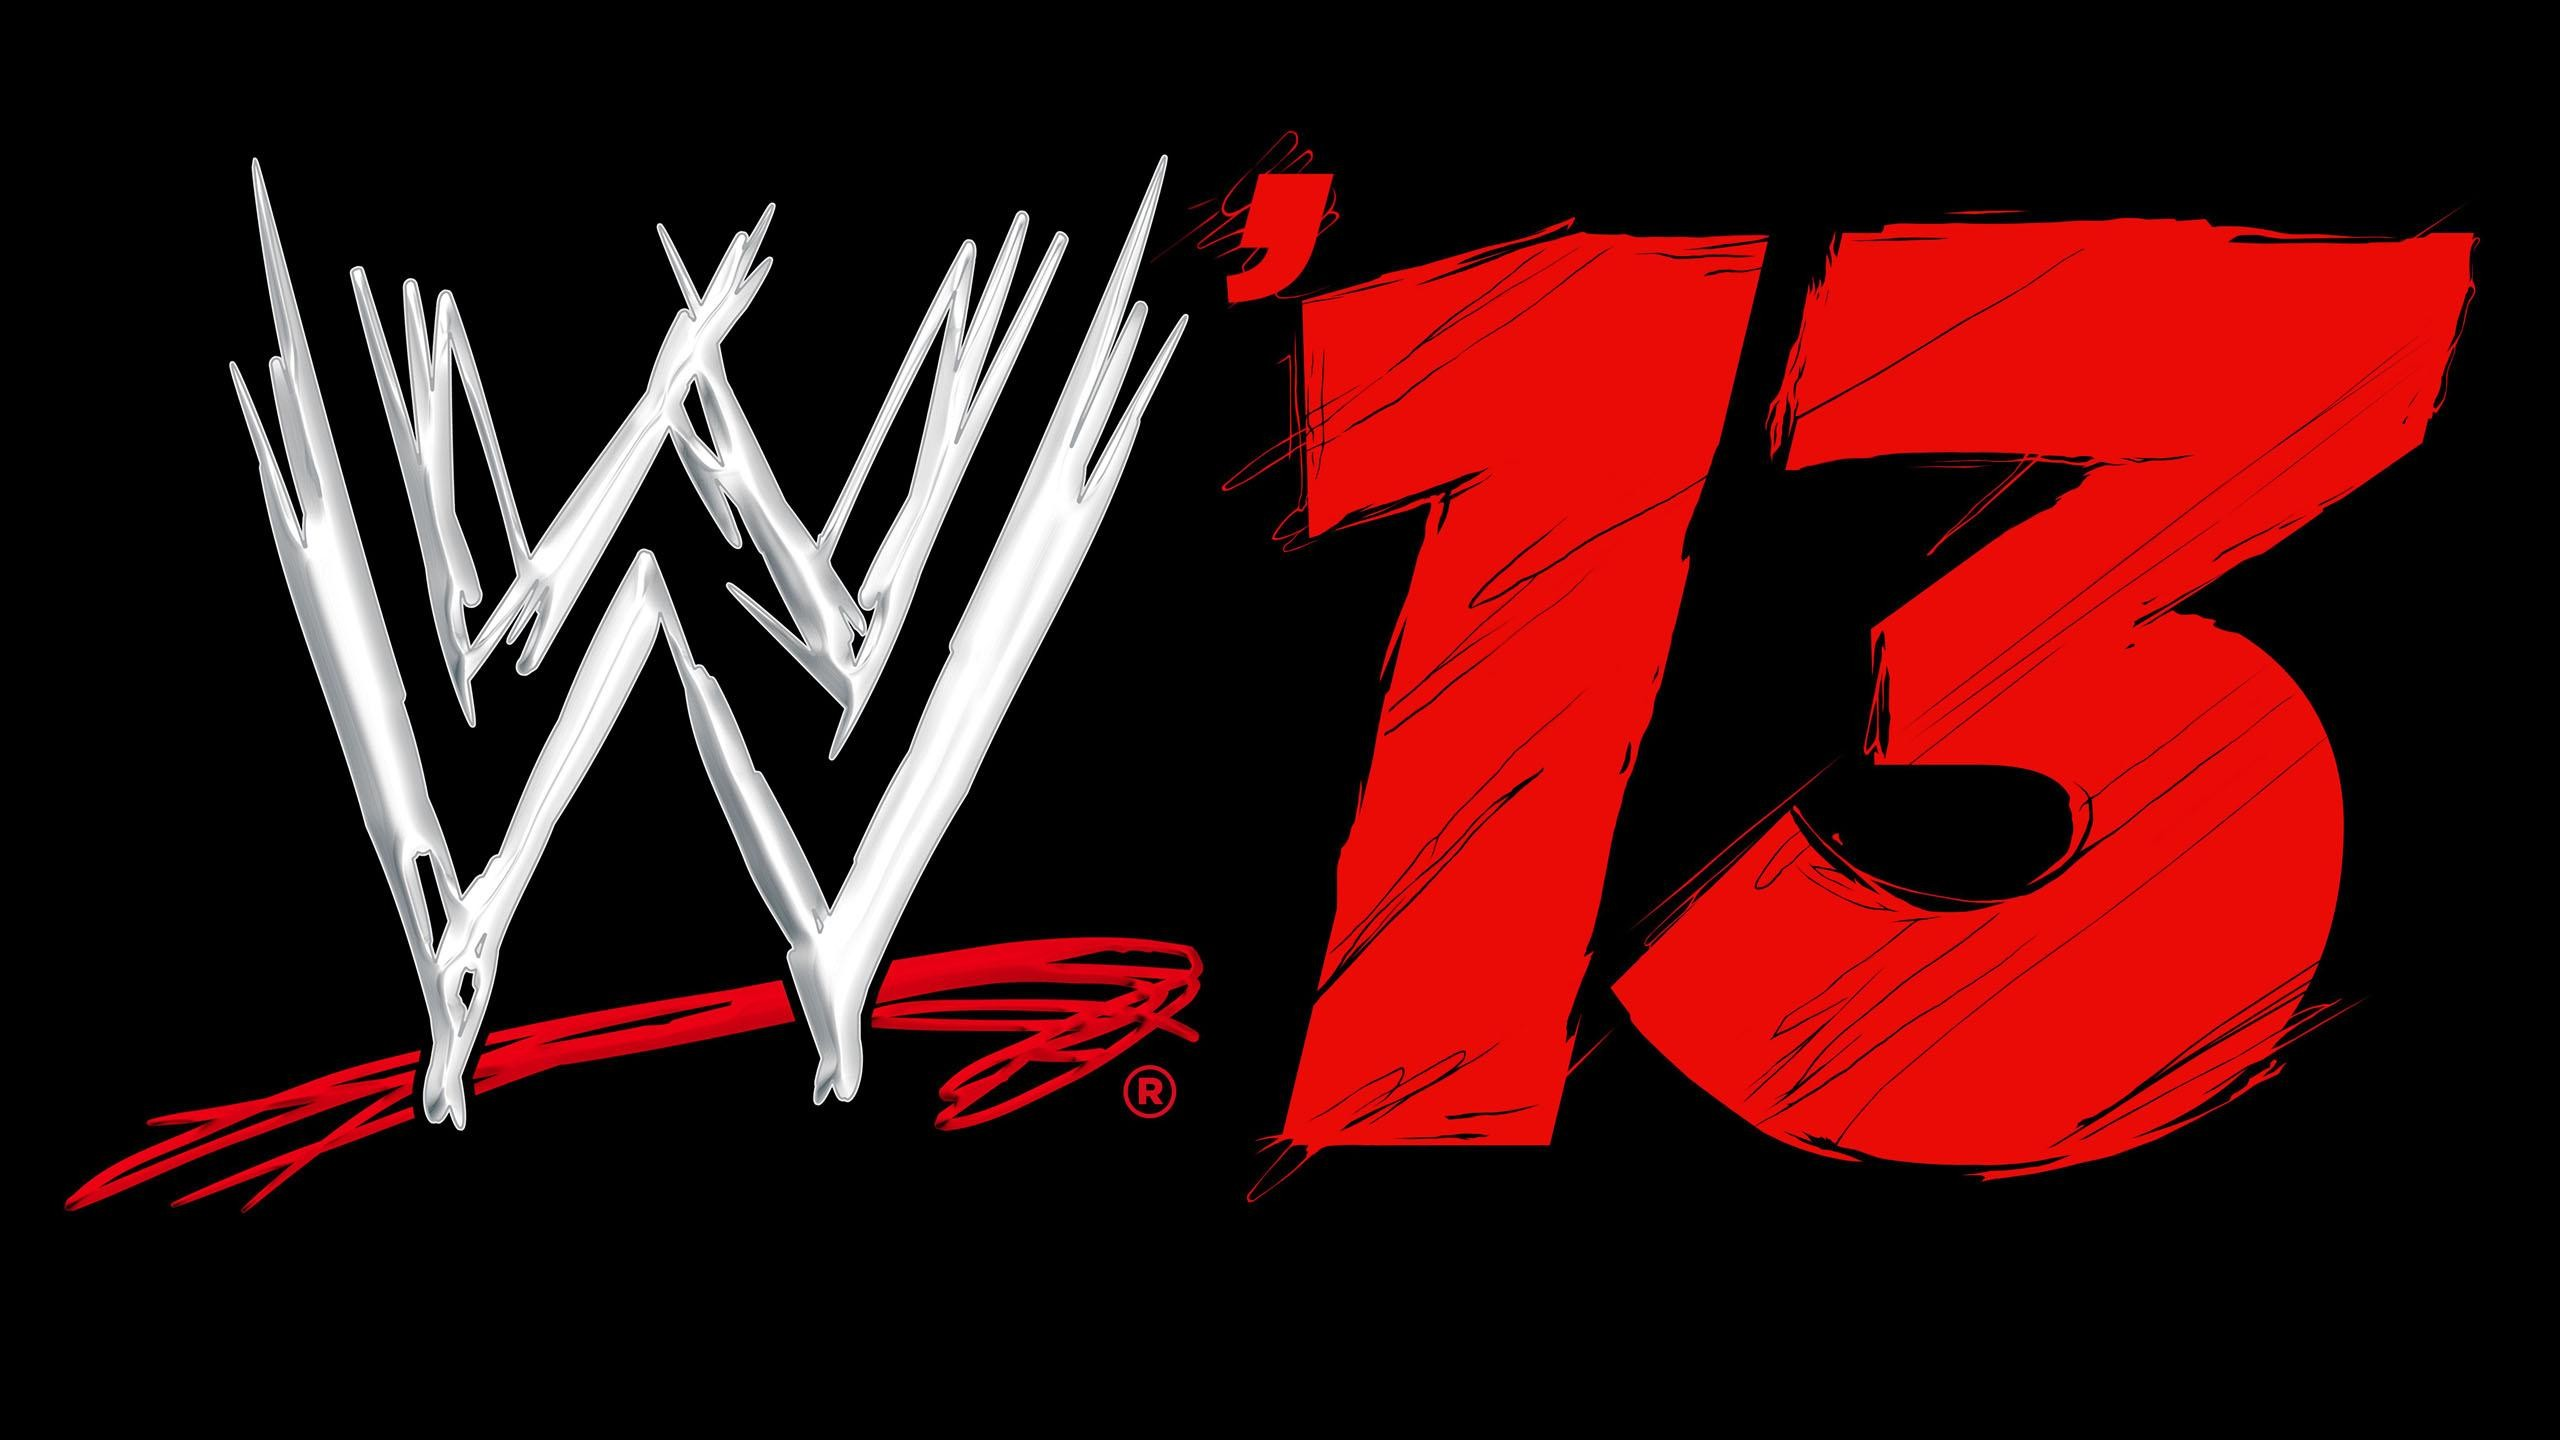 2560x1440 WWE logo black skiing freestyle resolution HD wallpapers.